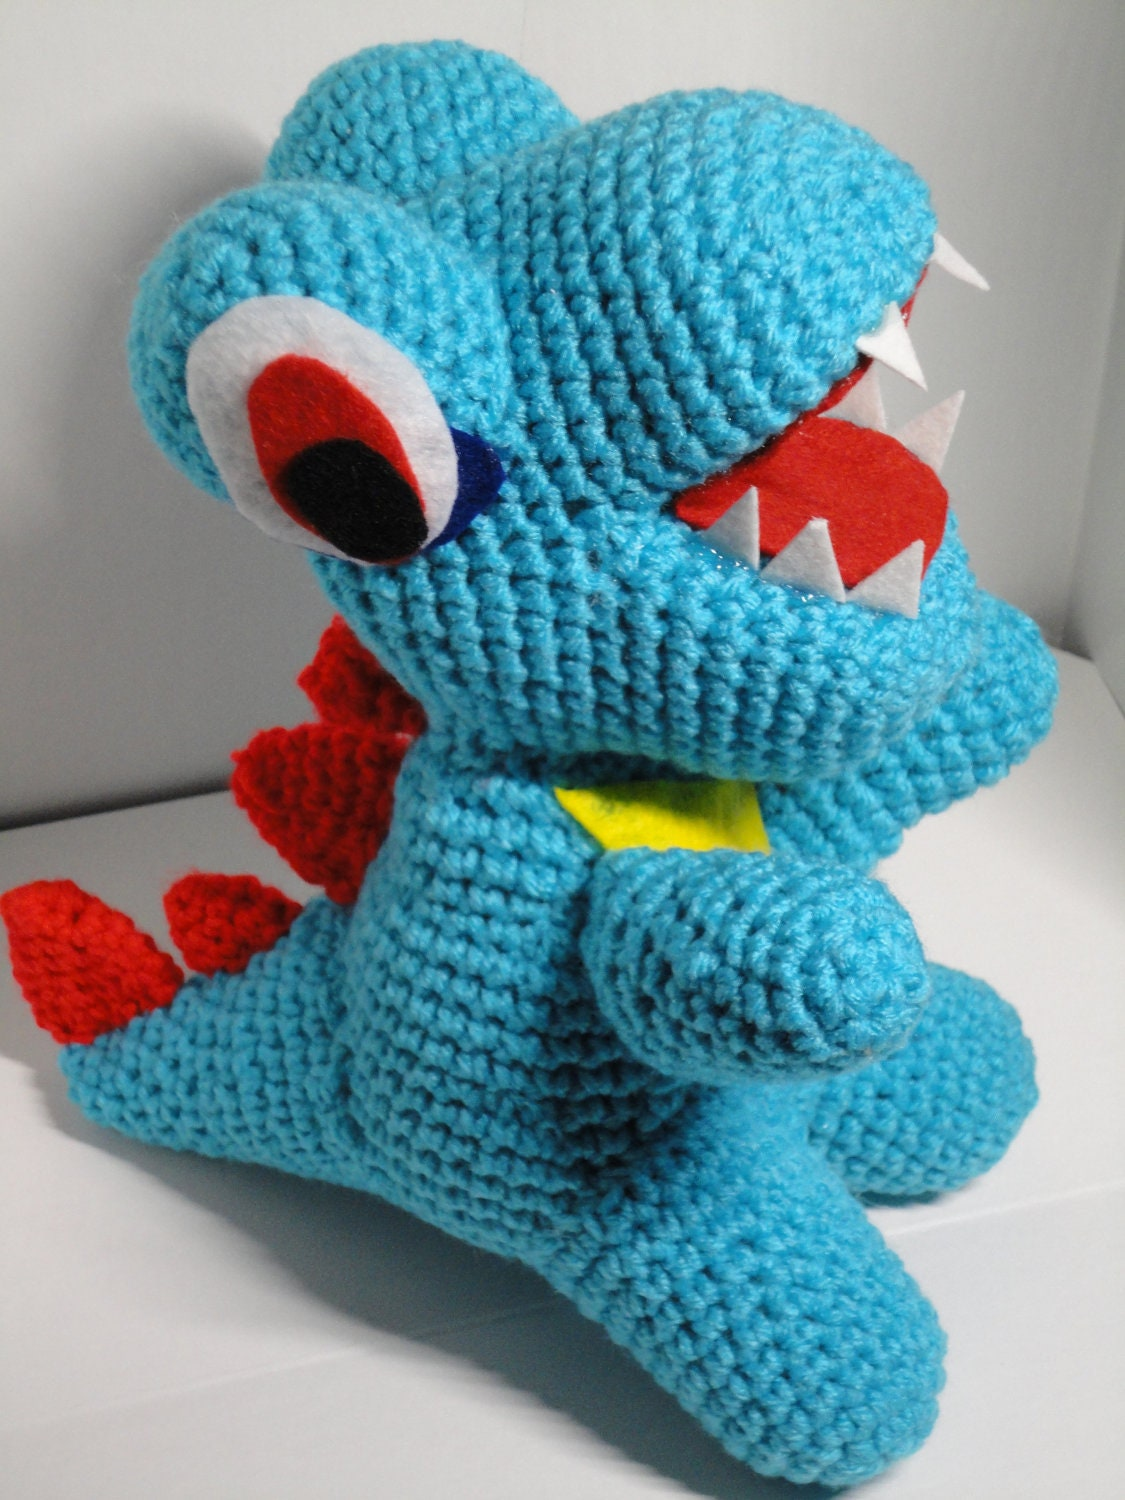 Amigurumi Halloween Free Patterns : inspired Amigurumi Crochet water lizard plush